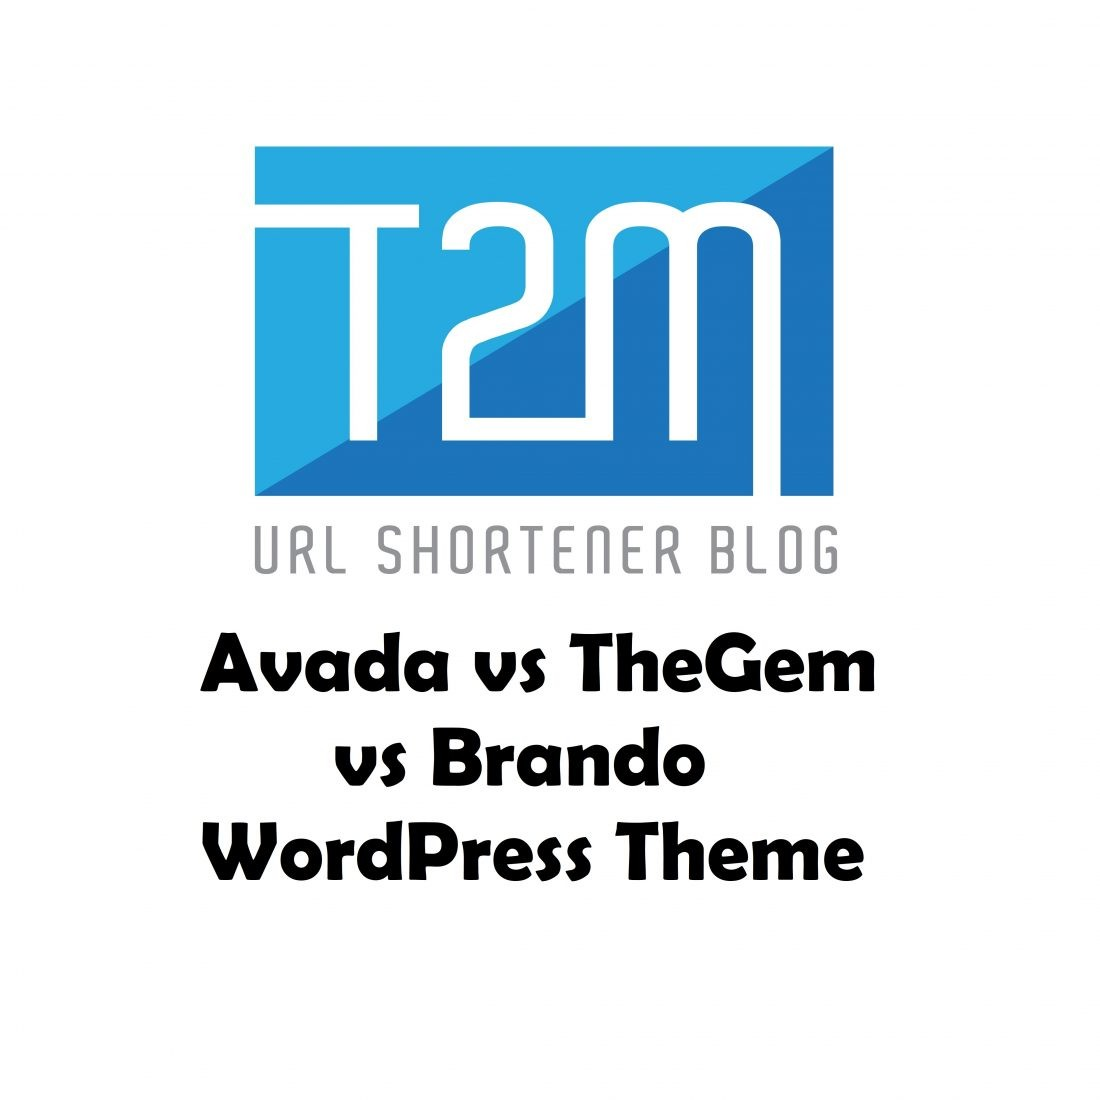 Avada vs TheGem vs Brando WordPress Theme